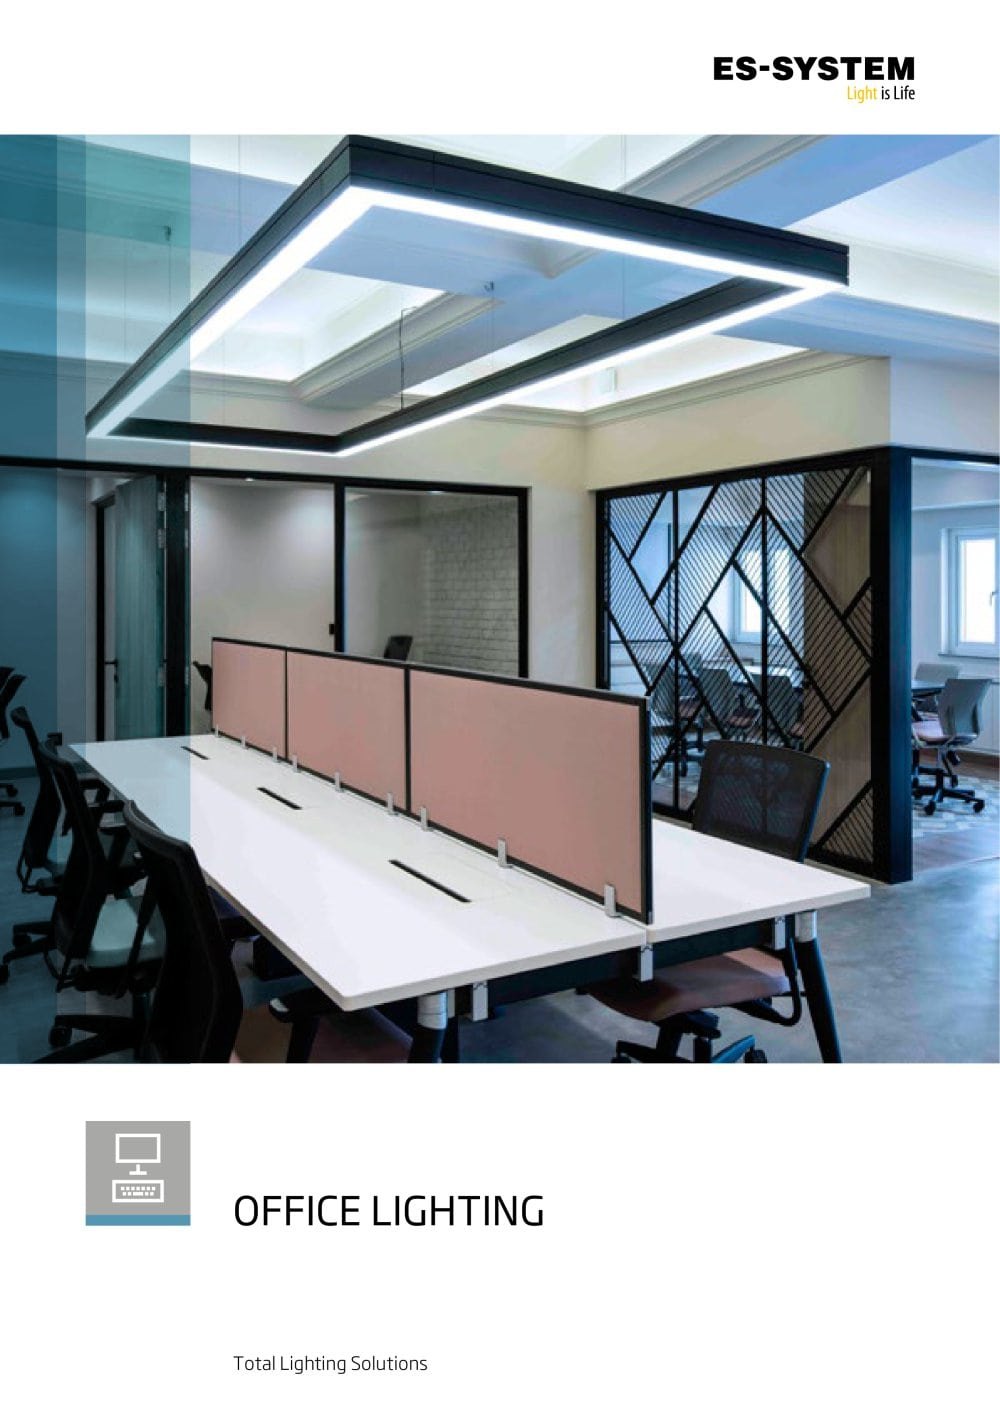 office lighting solutions. Office Lighting - 1 / 56 Pages Solutions